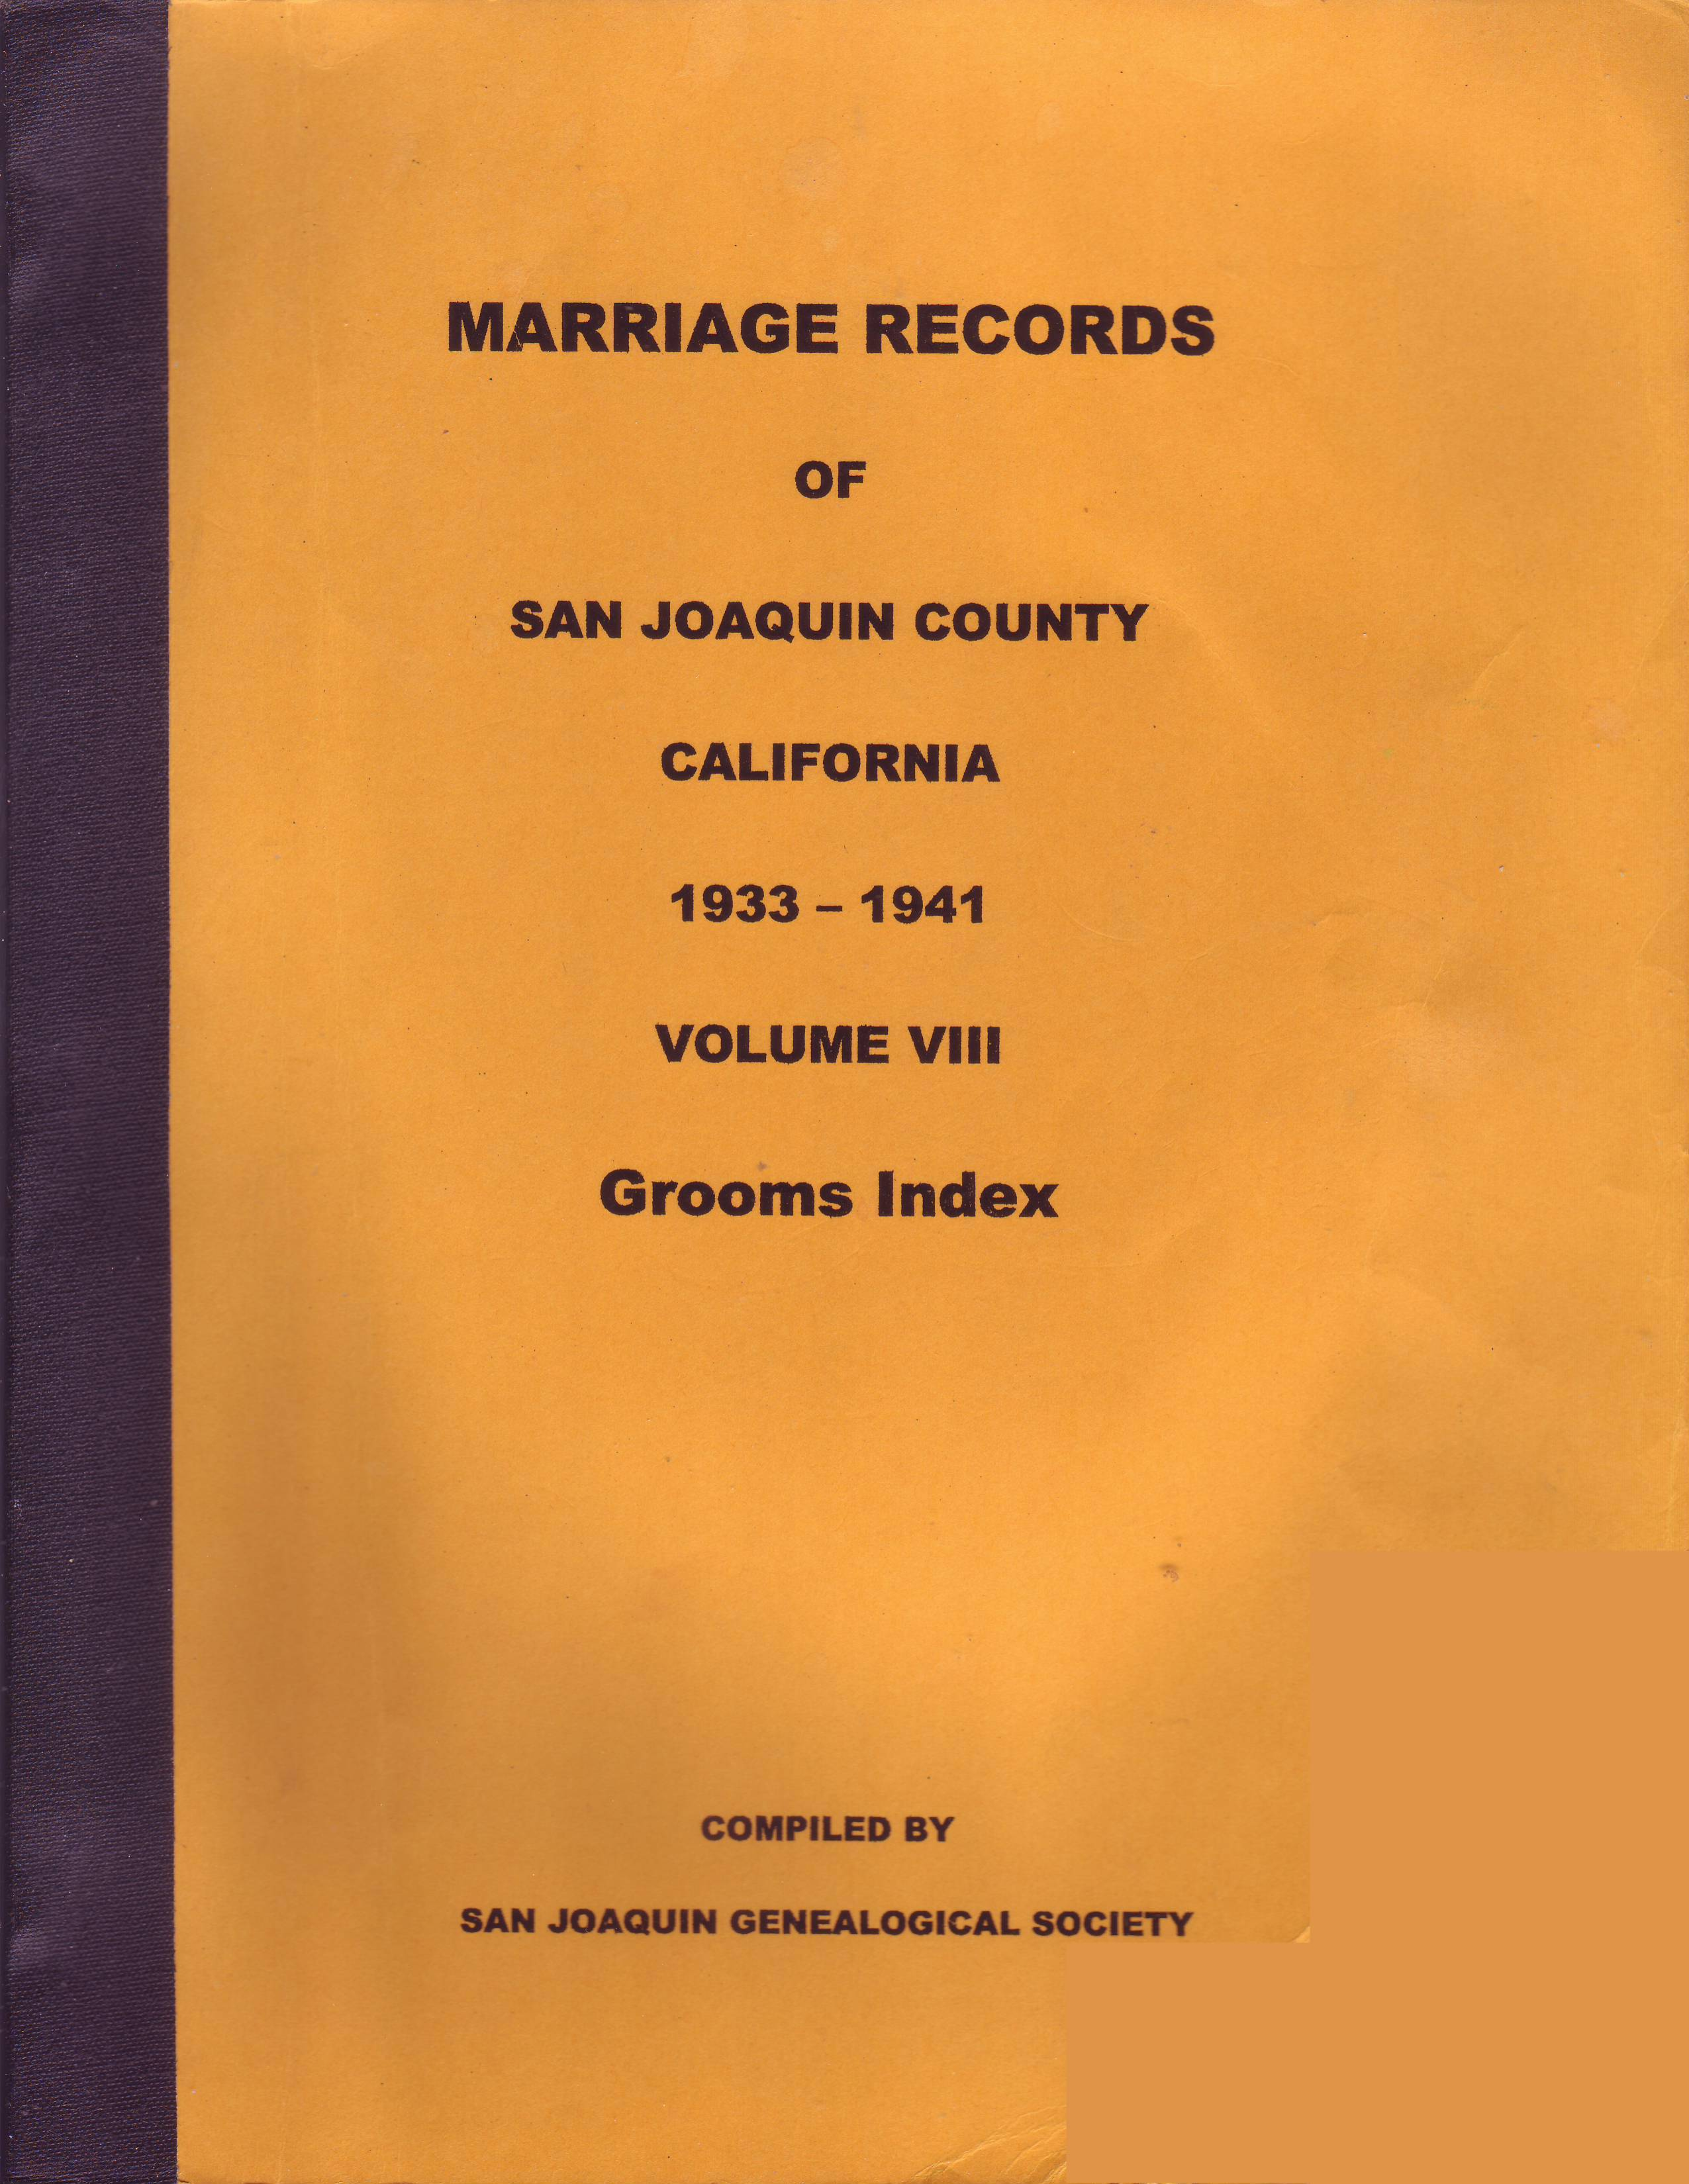 Marriage Records of San Joaquin County, California, 1933-1941, Volume VIII, Grooms Index